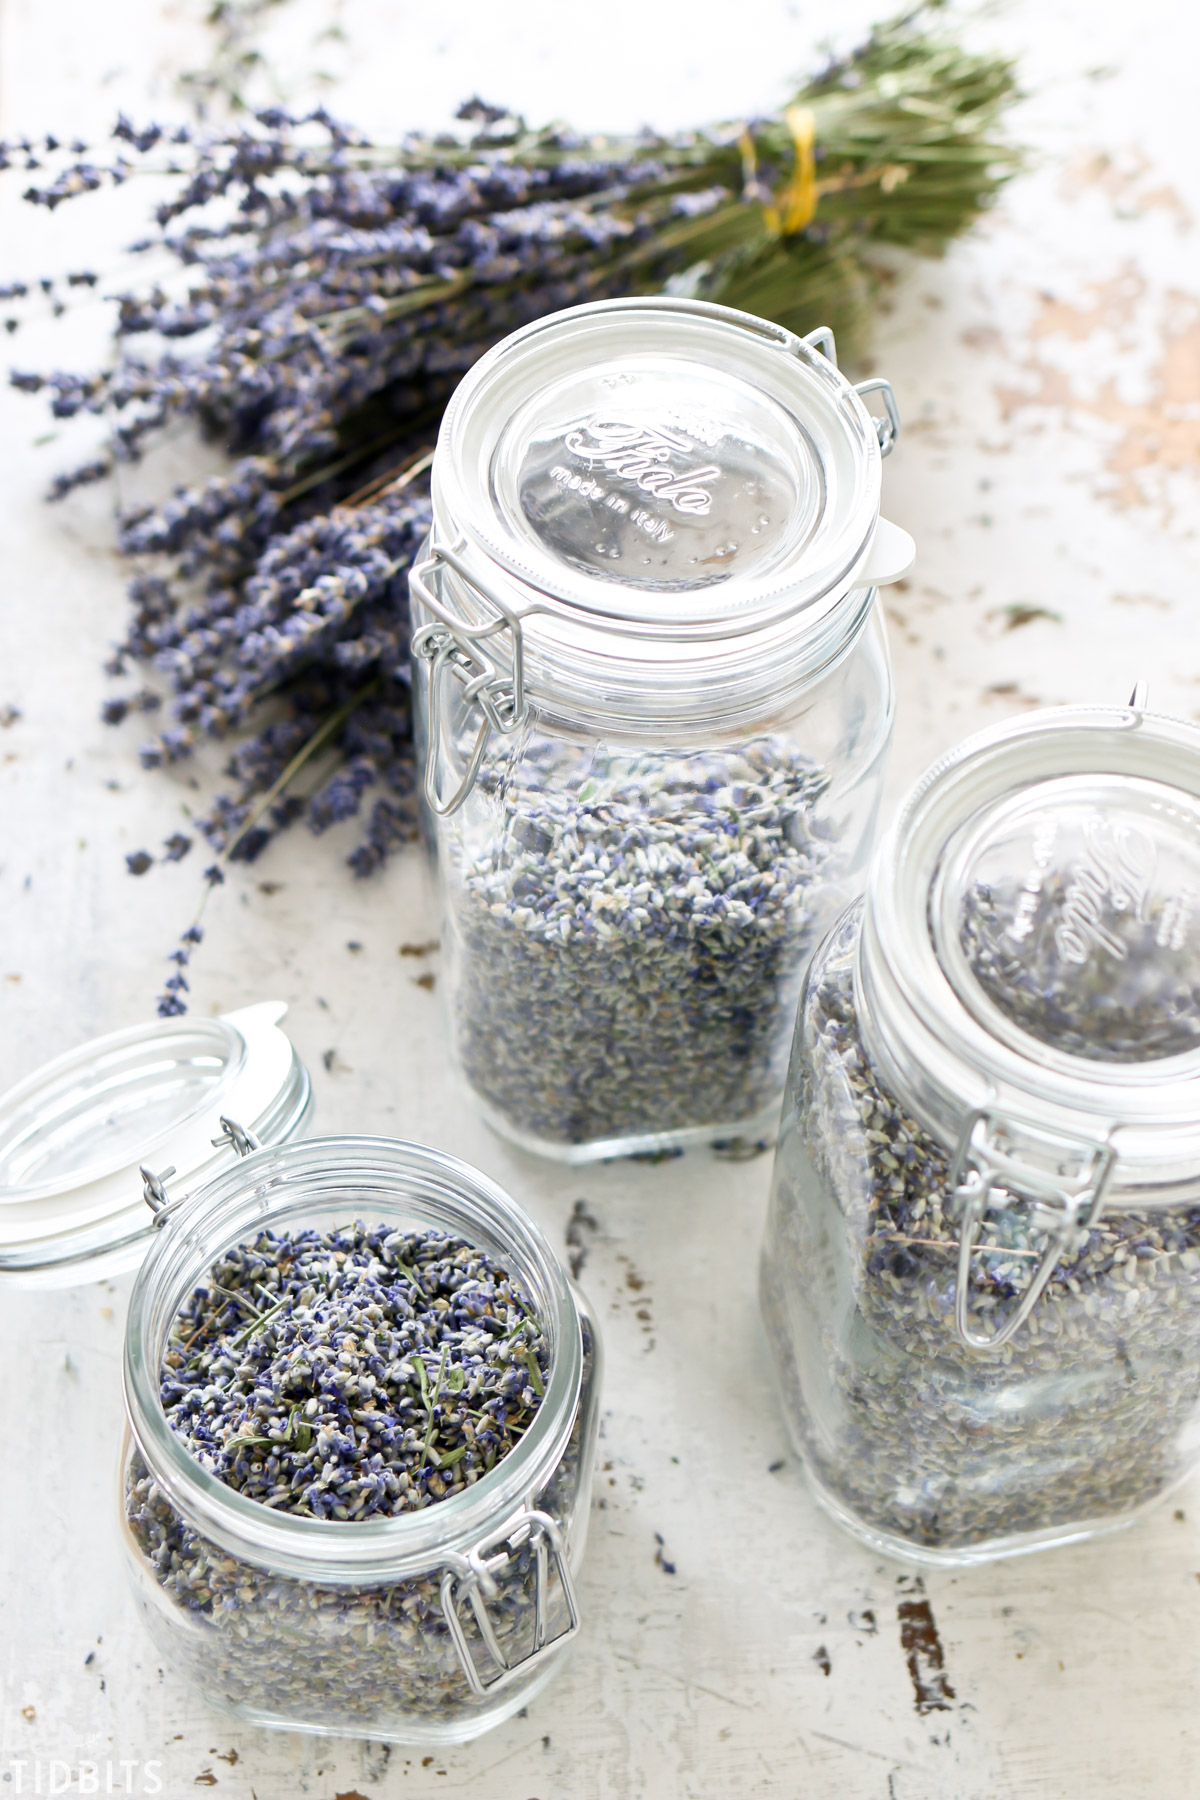 dried lavender buds in glass jars